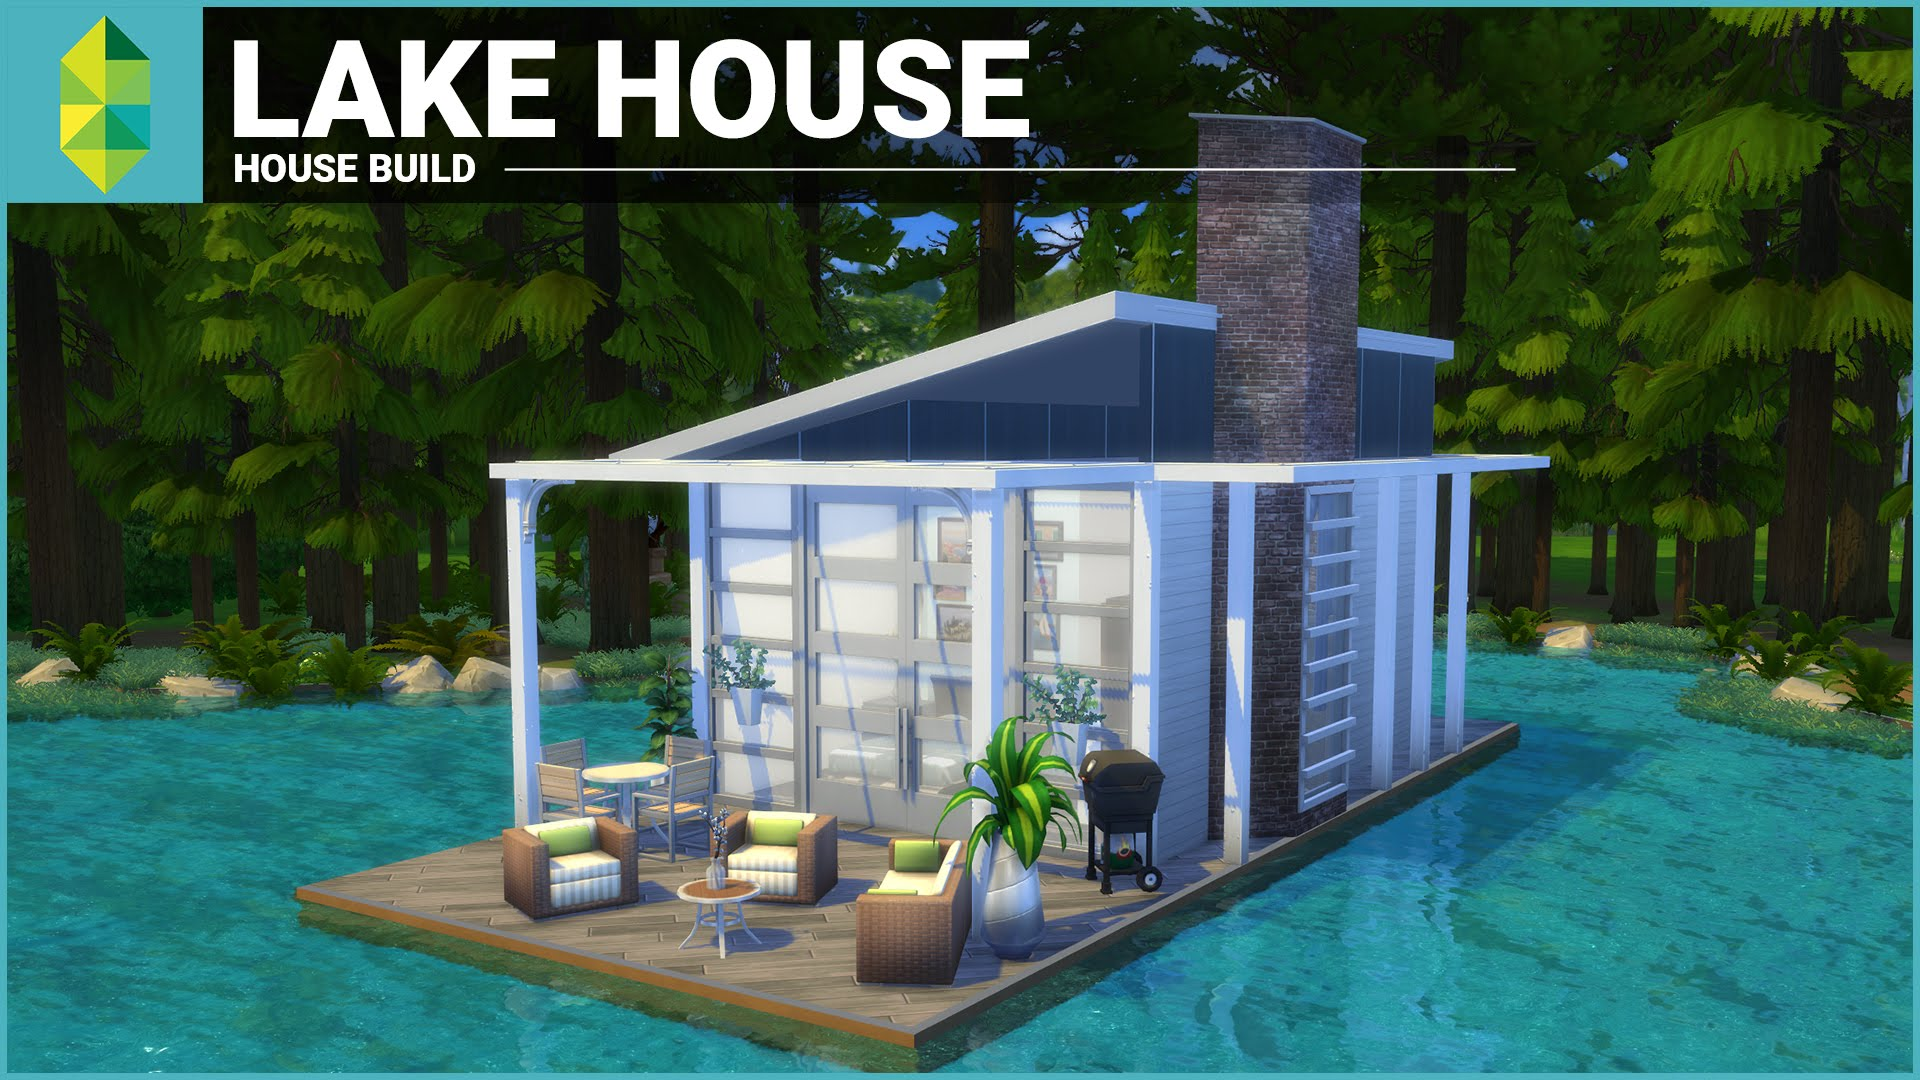 The Sims 4 House Building - Lake House (Tiny 4x6 Grid) - YouTube